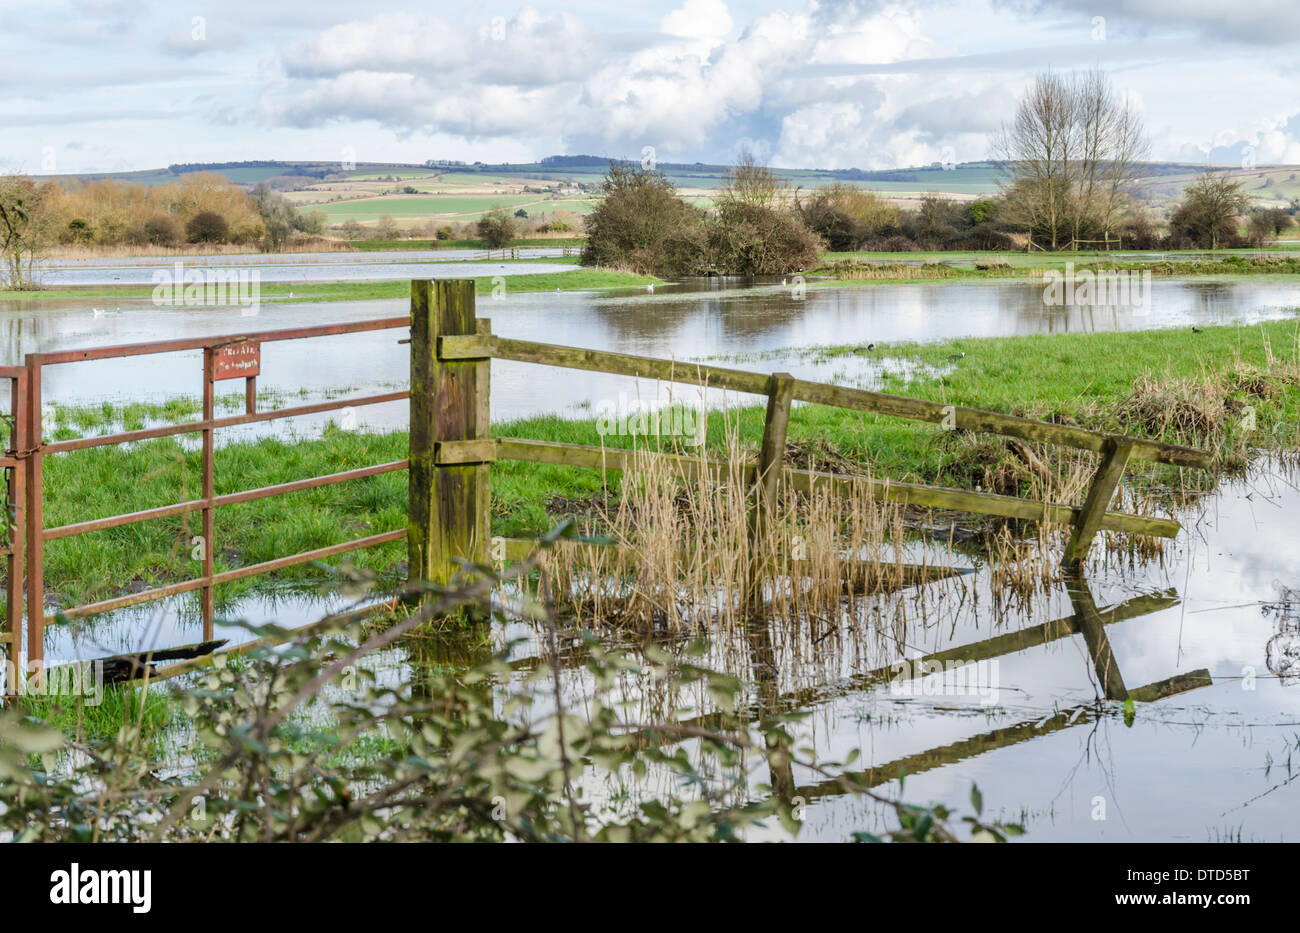 Flooded fields in Arundel, West Sussex, England, UK, after storms and heavy rain in February 2014. - Stock Image